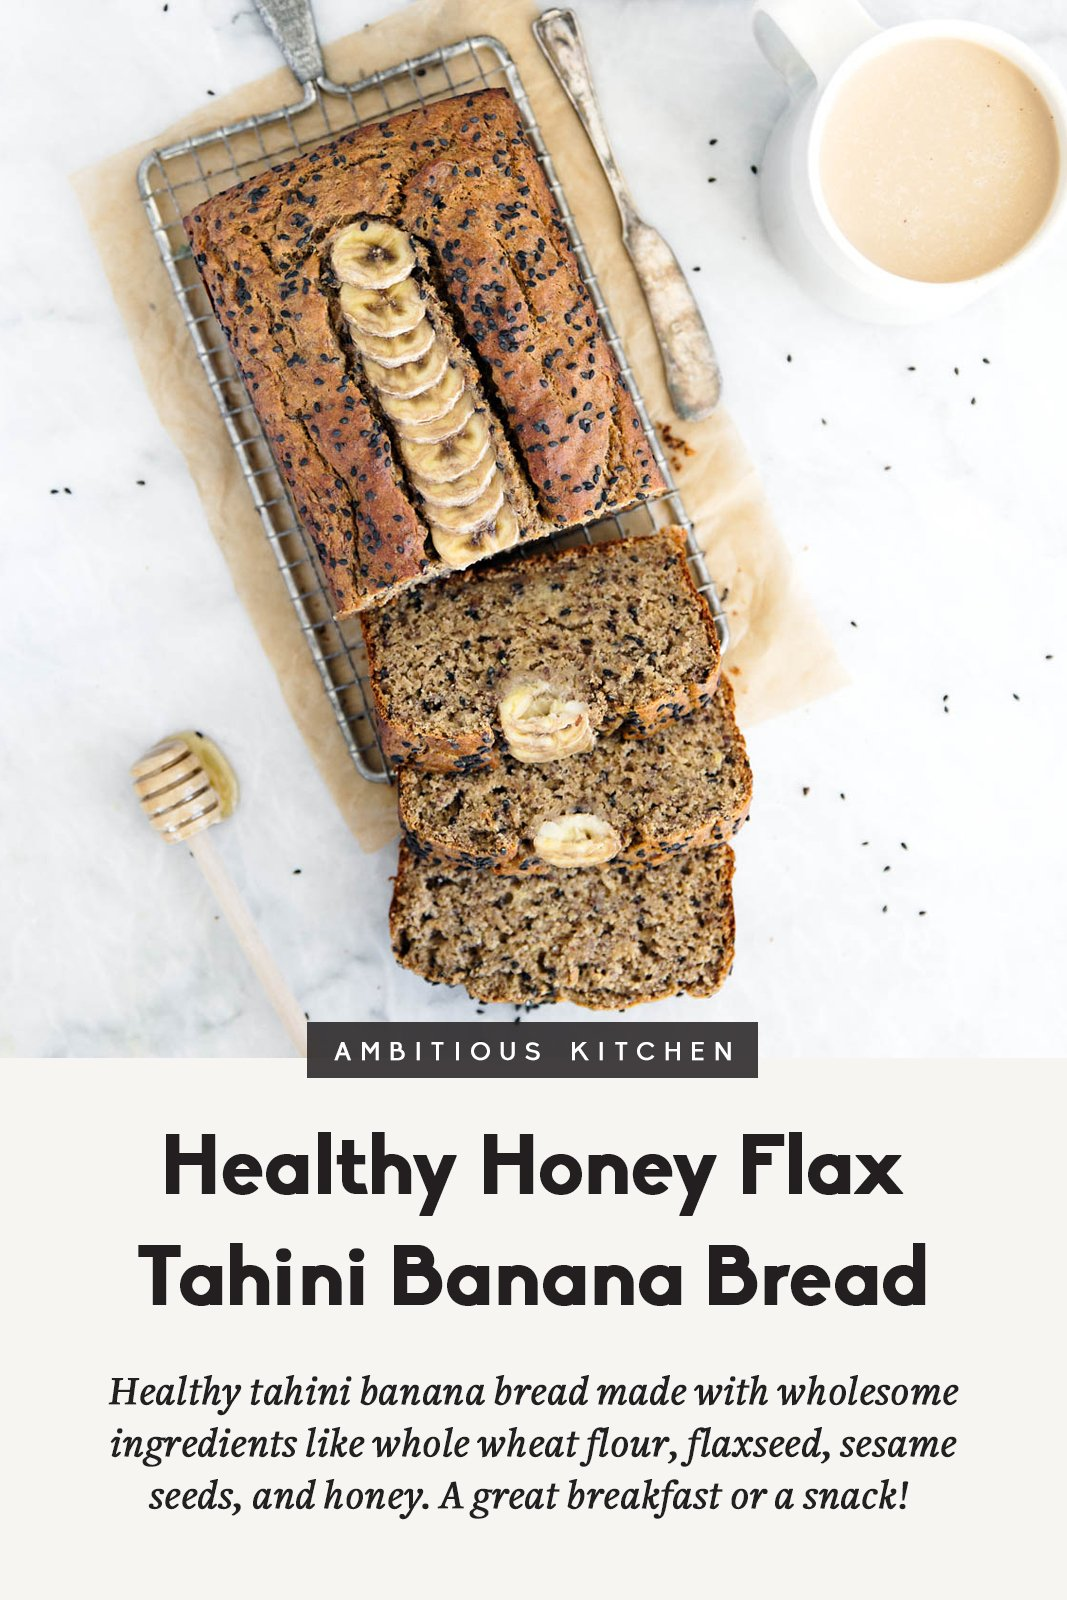 Healthy Tahini Banana Bread made with whole wheat flour, flaxseed, sesame seeds and naturally sweetened with honey. This oil-free healthy banana bread is wonderful toasted with a drizzle of honey.